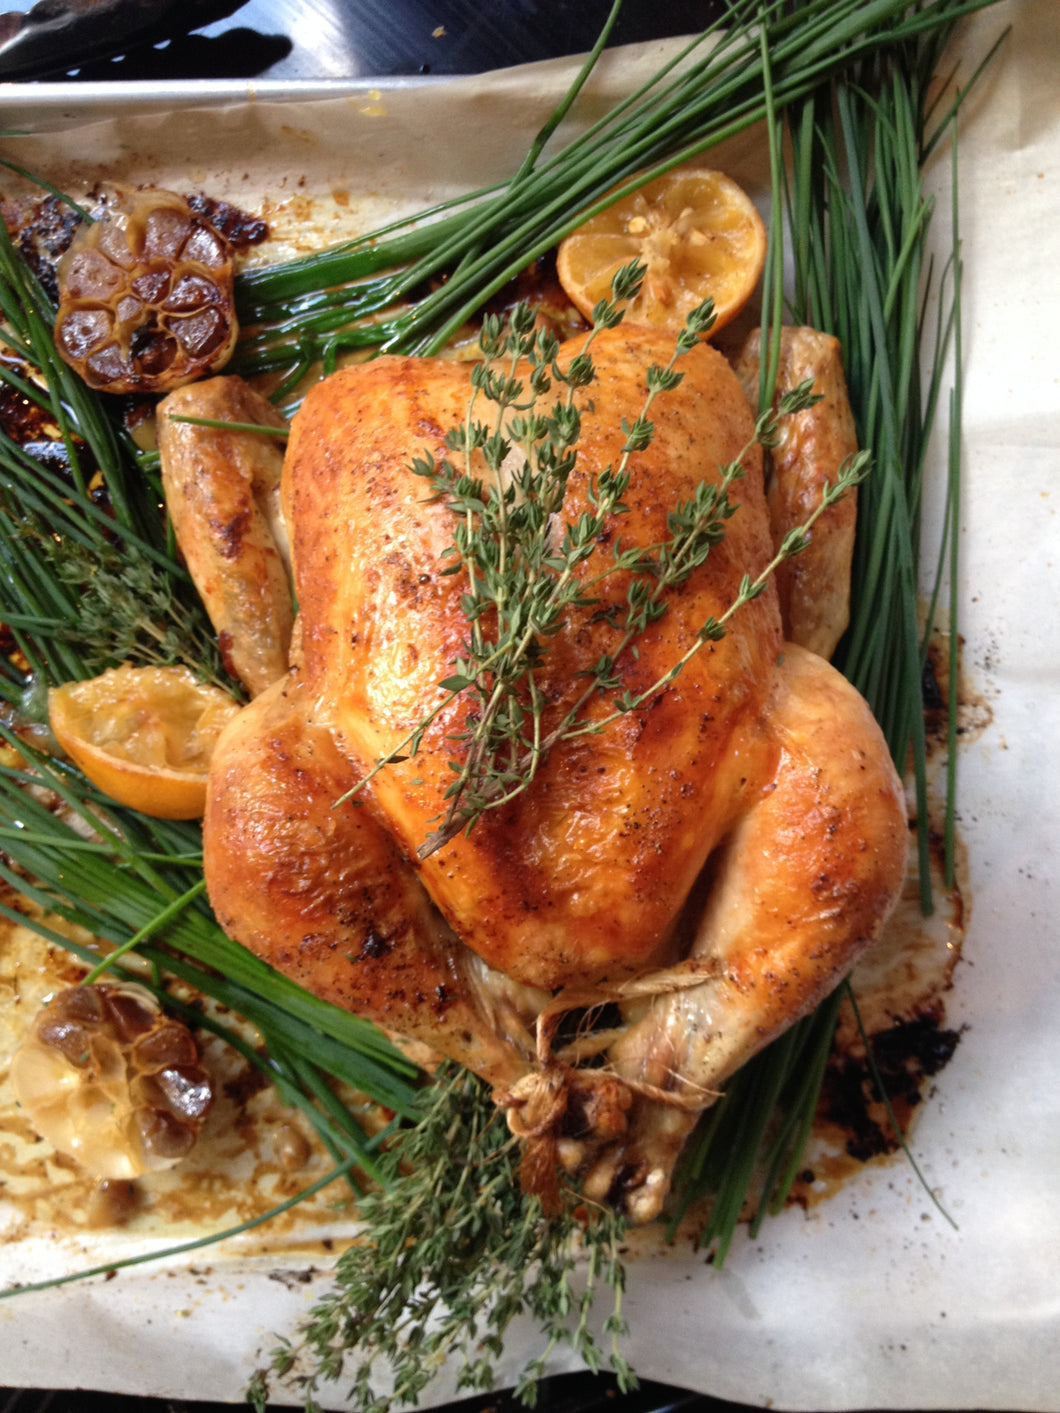 Zoe Ford Weekend Chicken Ready to cook! (Week of September 18th- Red wine vinaigrette with mustard and mushrooms)- $35)